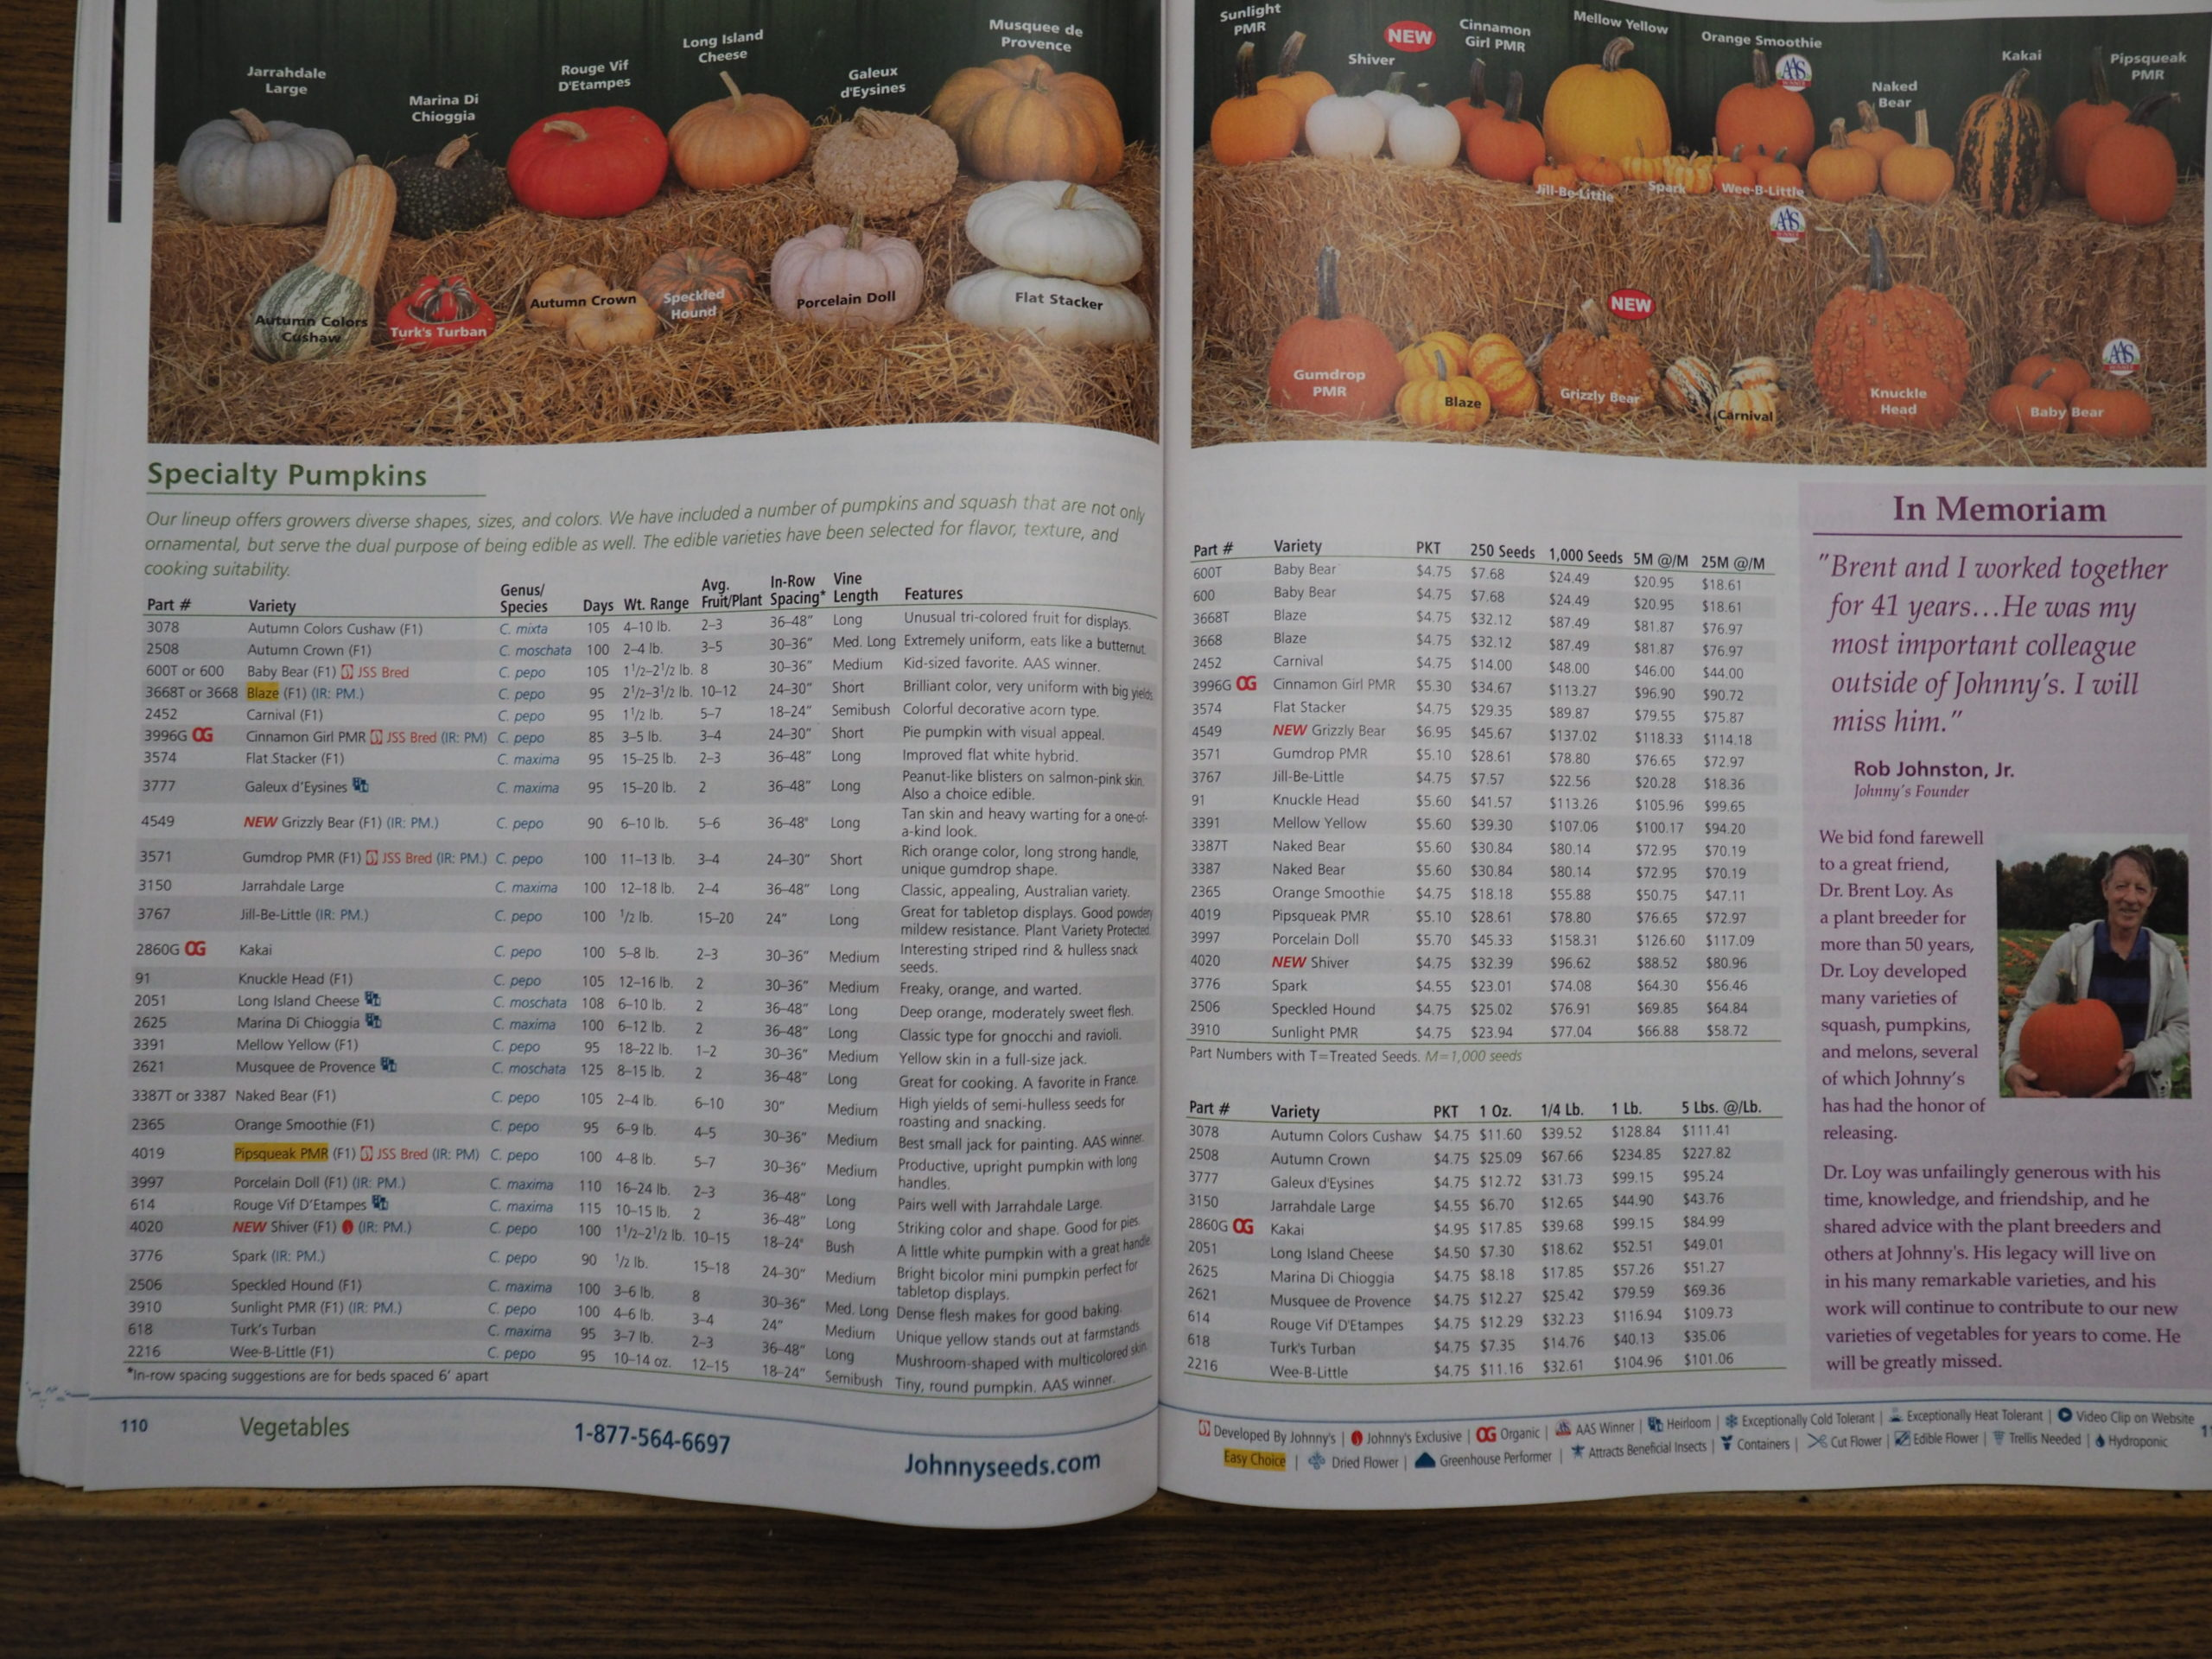 Johnny's Selected Seeds offers scores of choices when it comes to pumpkins.  These two pages show and describe only 30 of the more than 60 pumpkin varieties that Johnny's includes in its 2021 catalog.